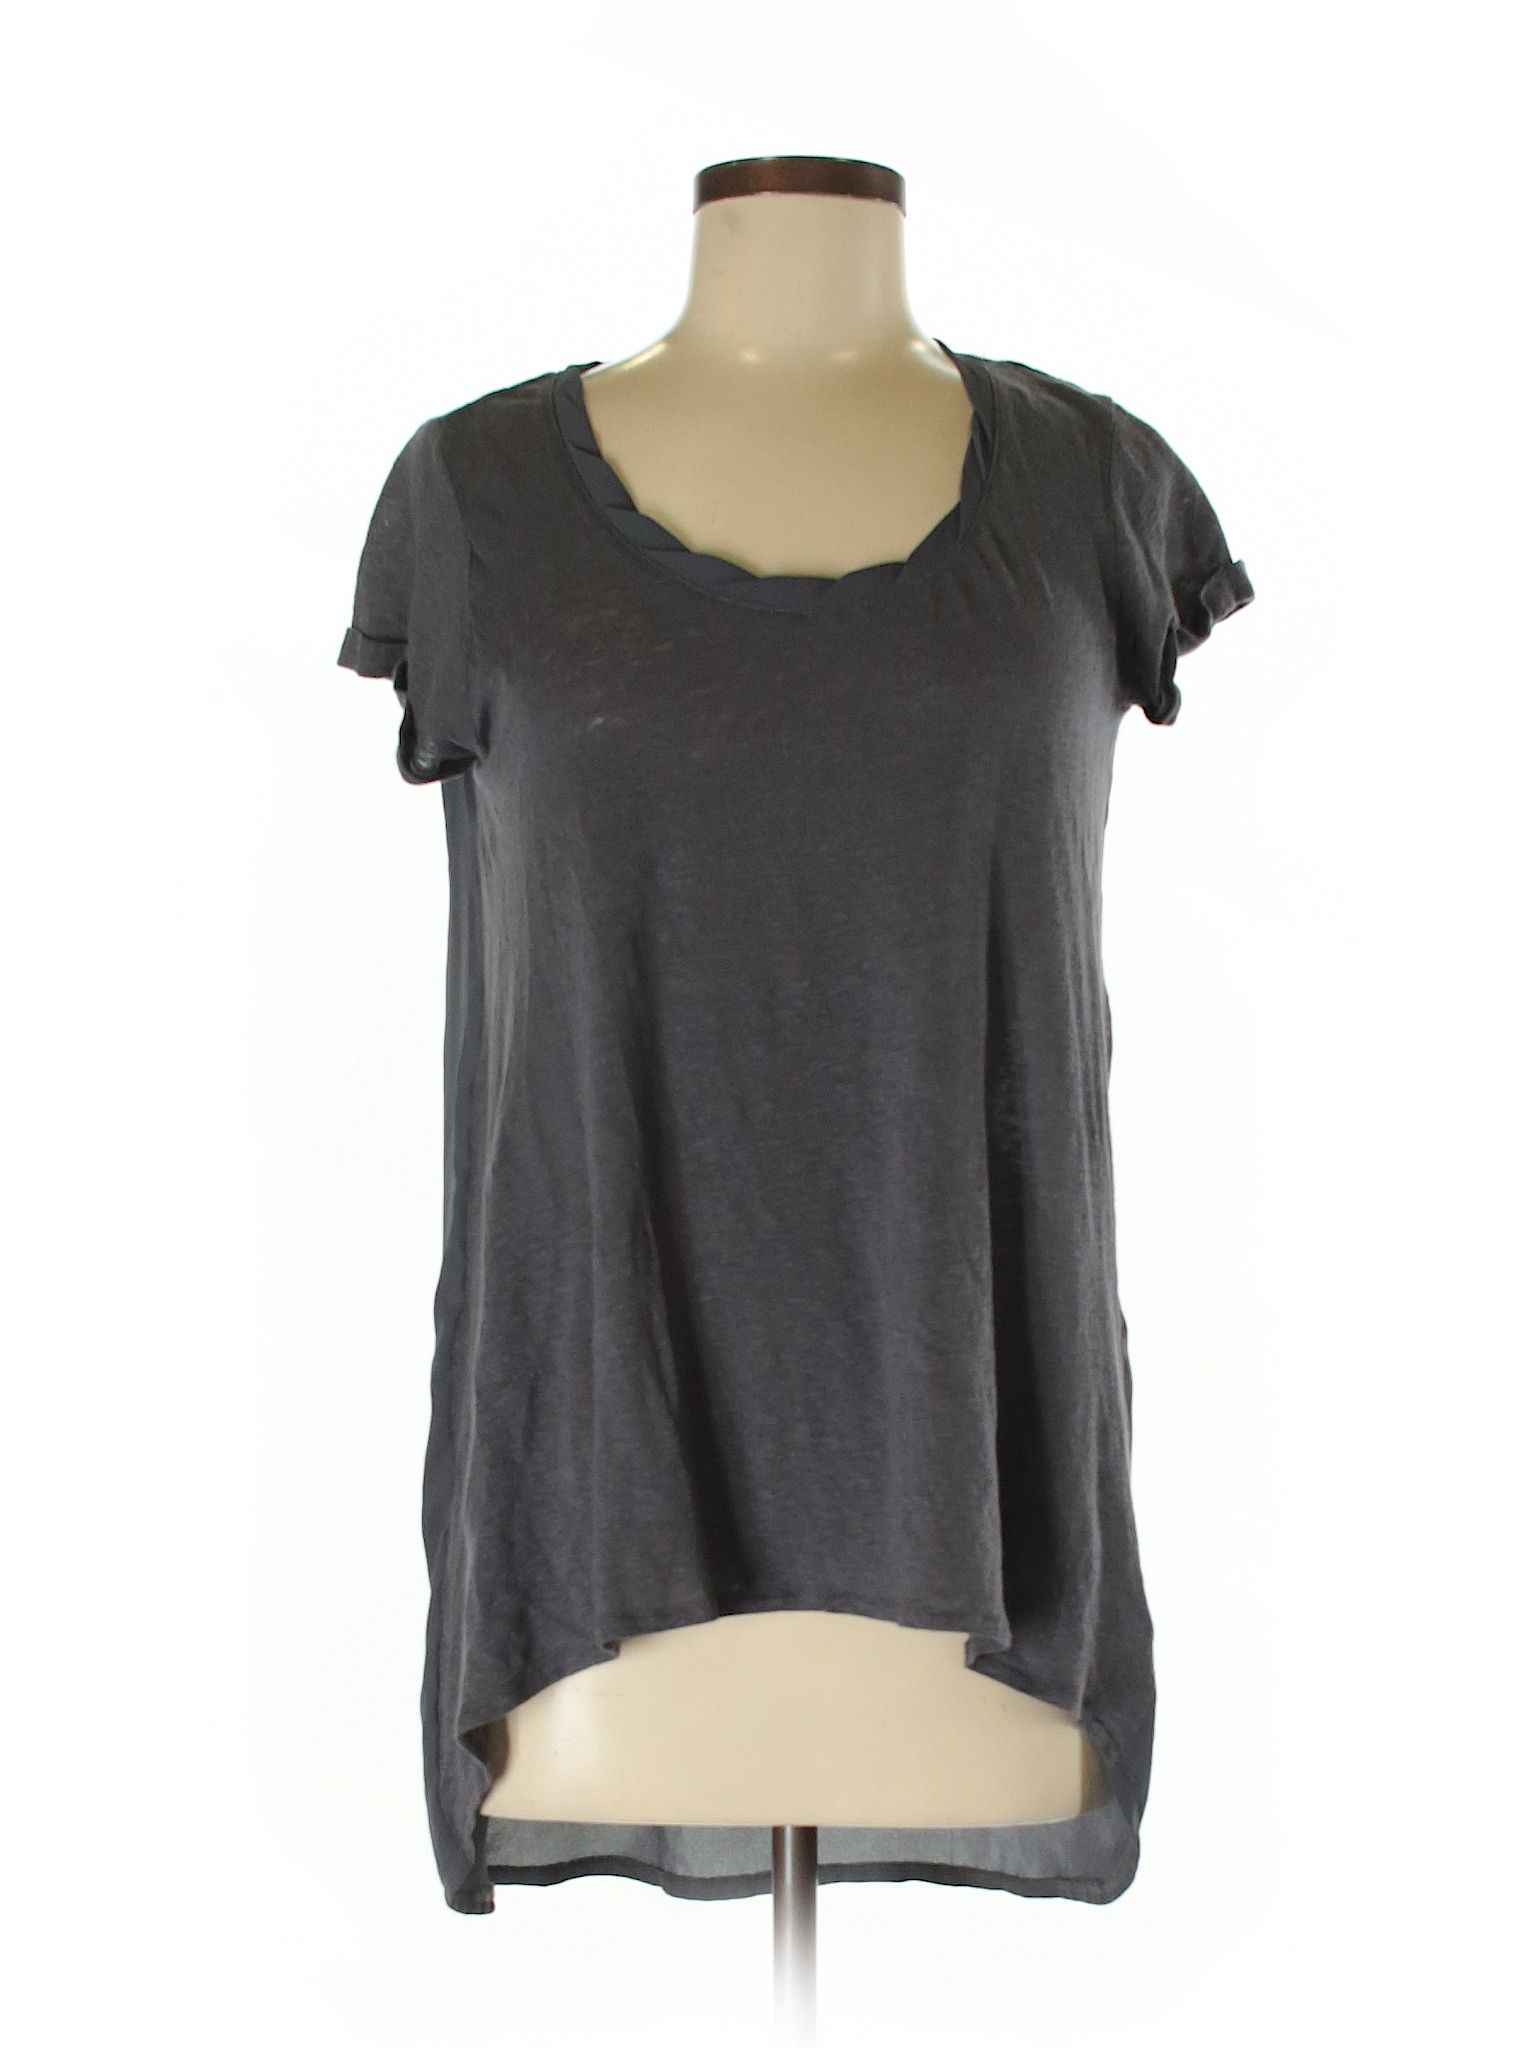 c734611c8e3 Cynthia Rowley for T.J. Maxx Short Sleeve Blouse  Gray Women s Tops -  27129773